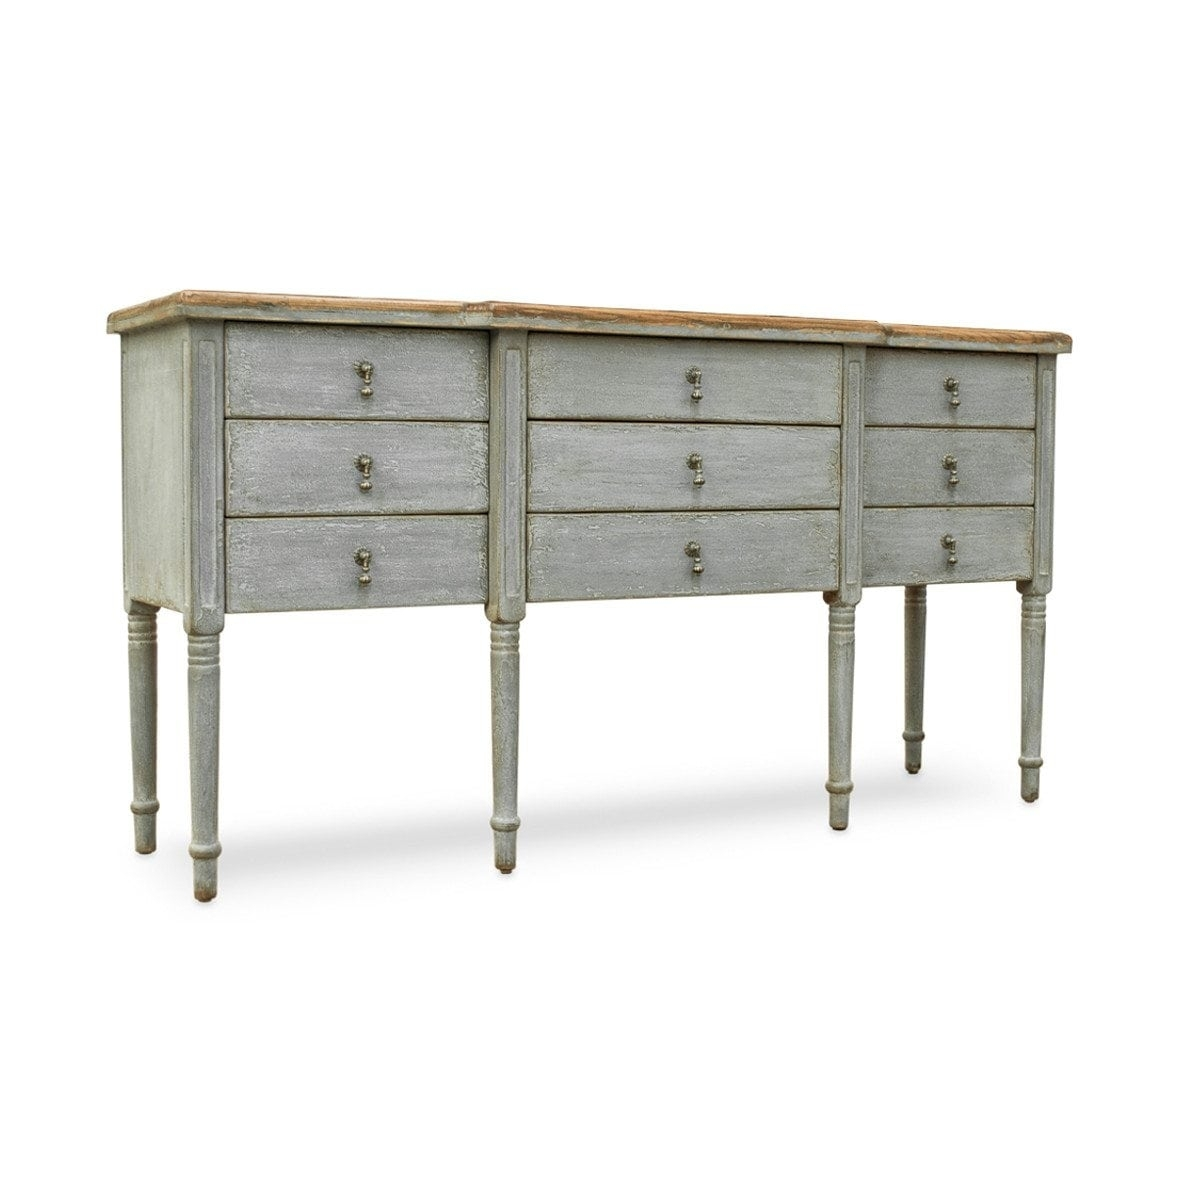 Reclaimed Wood Furniture Sideboard, Upcycled From An Antique Door in Light Brown Reclaimed Elm & Pine 84 Inch Sideboards (Image 21 of 30)